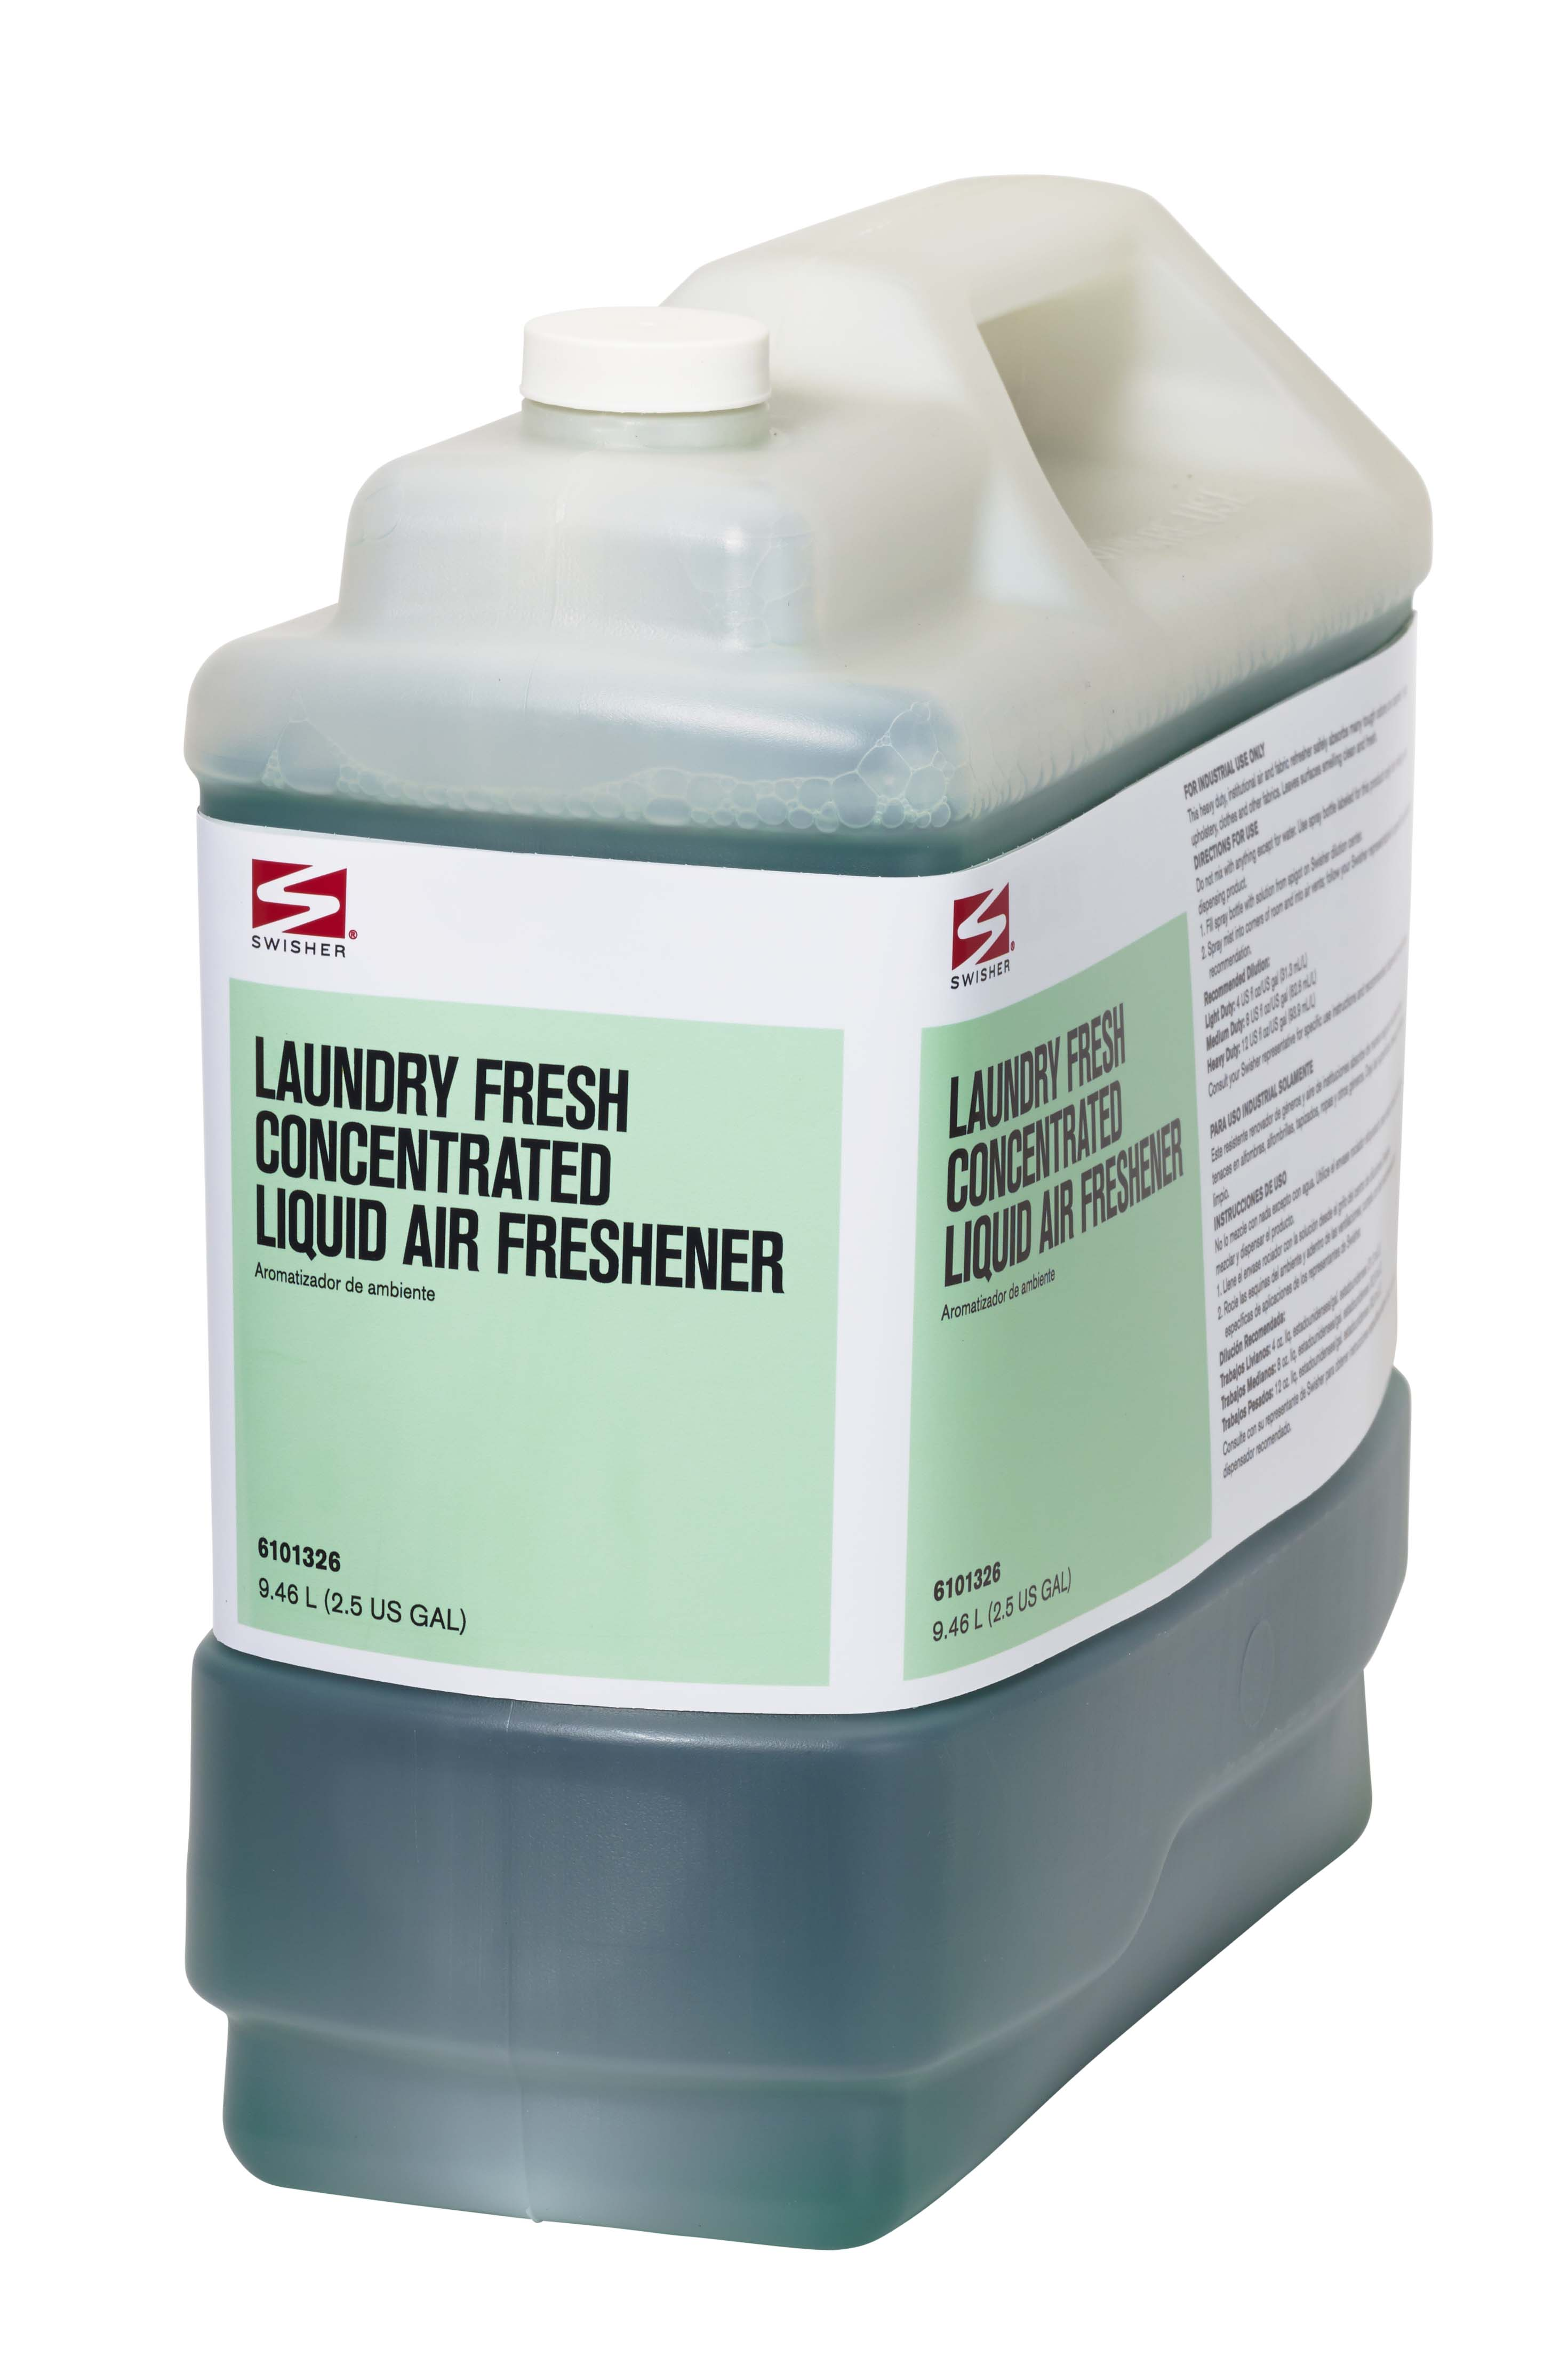 Swisher Laundry Fresh Concentrated Liquid Air Freshener